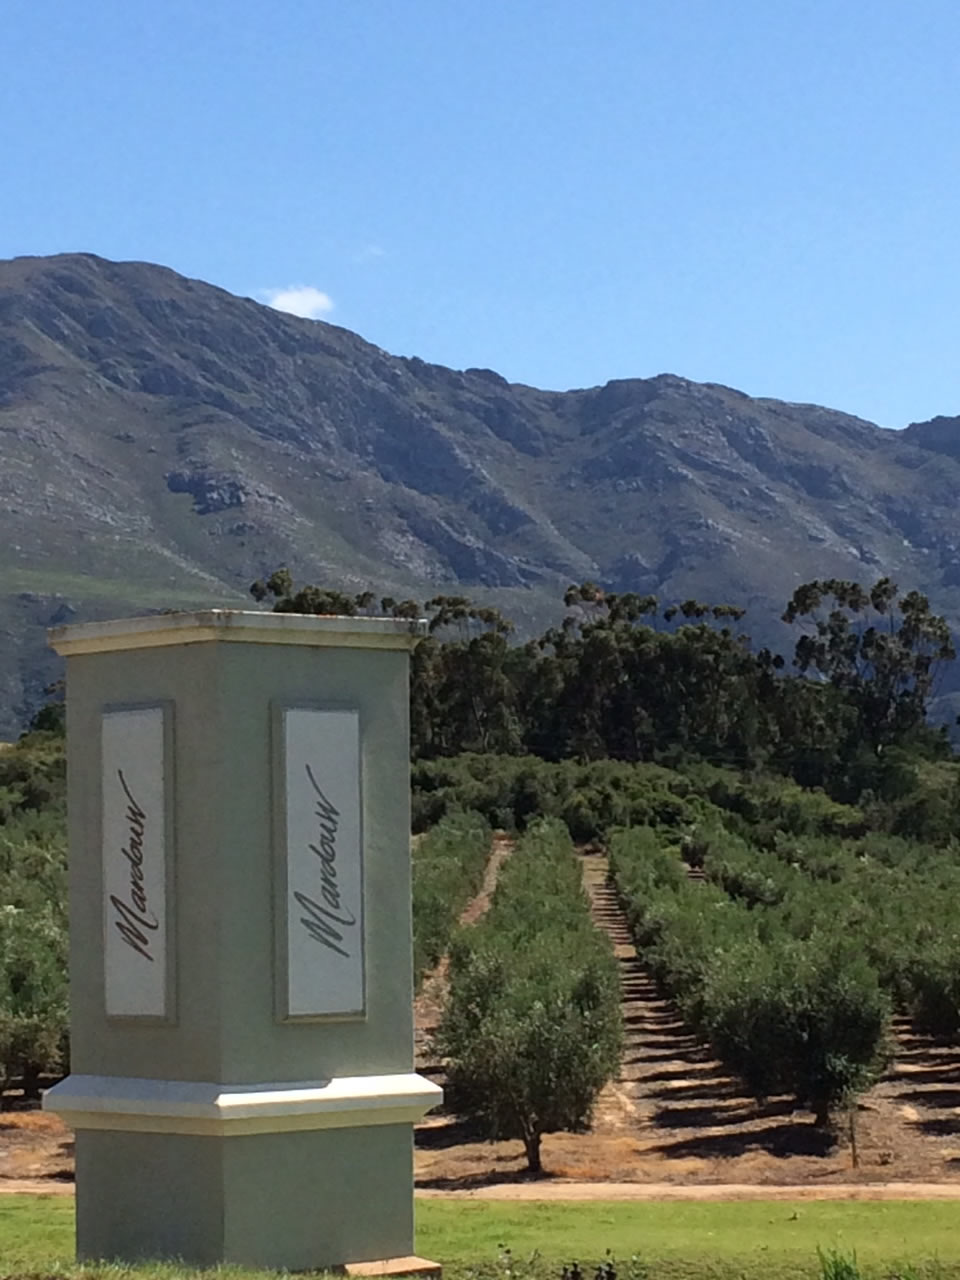 Impact of draught on olive trees in Swellendam, South Africa